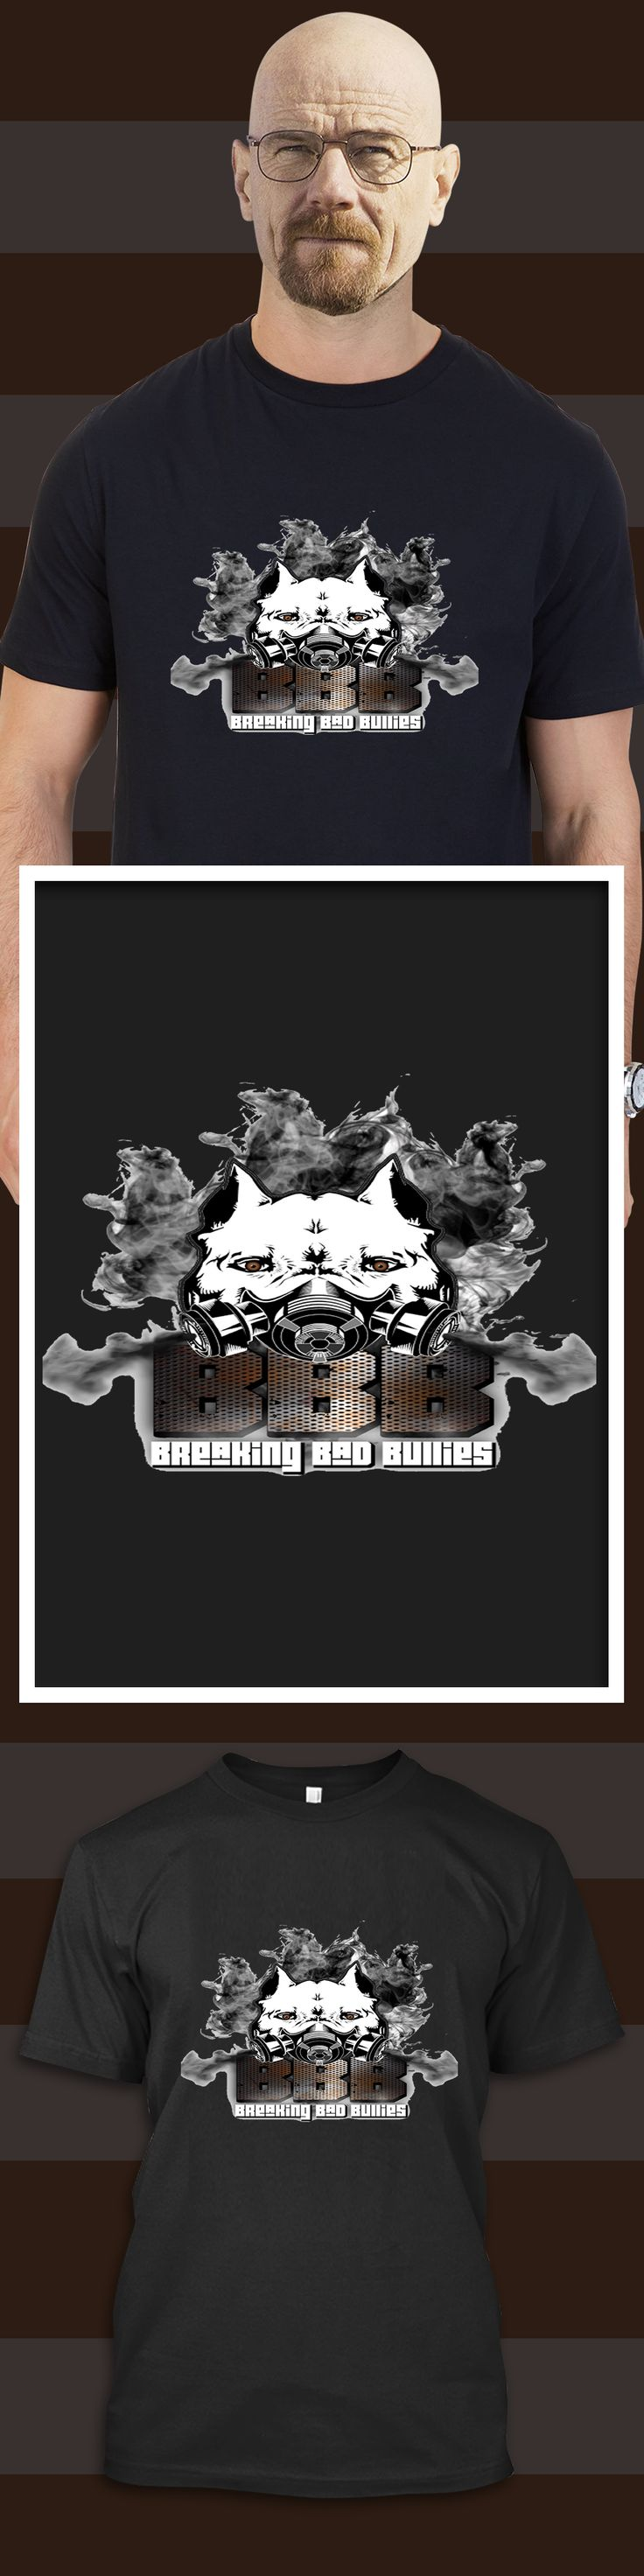 26 best breaking bad collection tees images on pinterest amazing breaking bad bullies limited edition order 2 or more for friendsfamily jeuxipadfo Choice Image